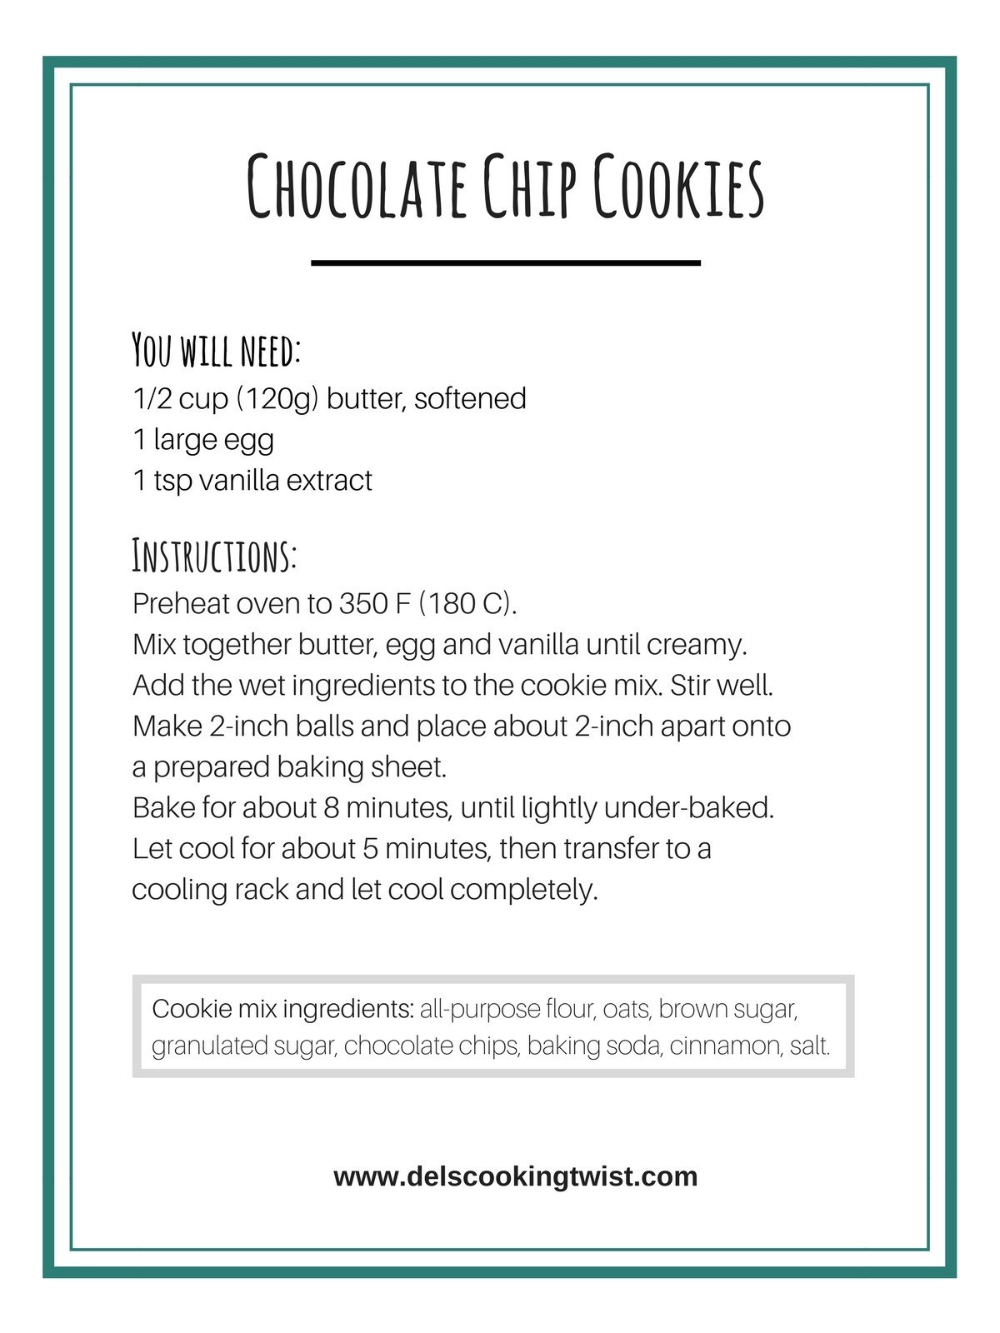 Chocolate Chip Cookie Mix In A Jar With Printable Label Del S Cooking Twist Recipe Chocolate Chip Cookie Mix Chocolate Chip Cookies Cookie Mix